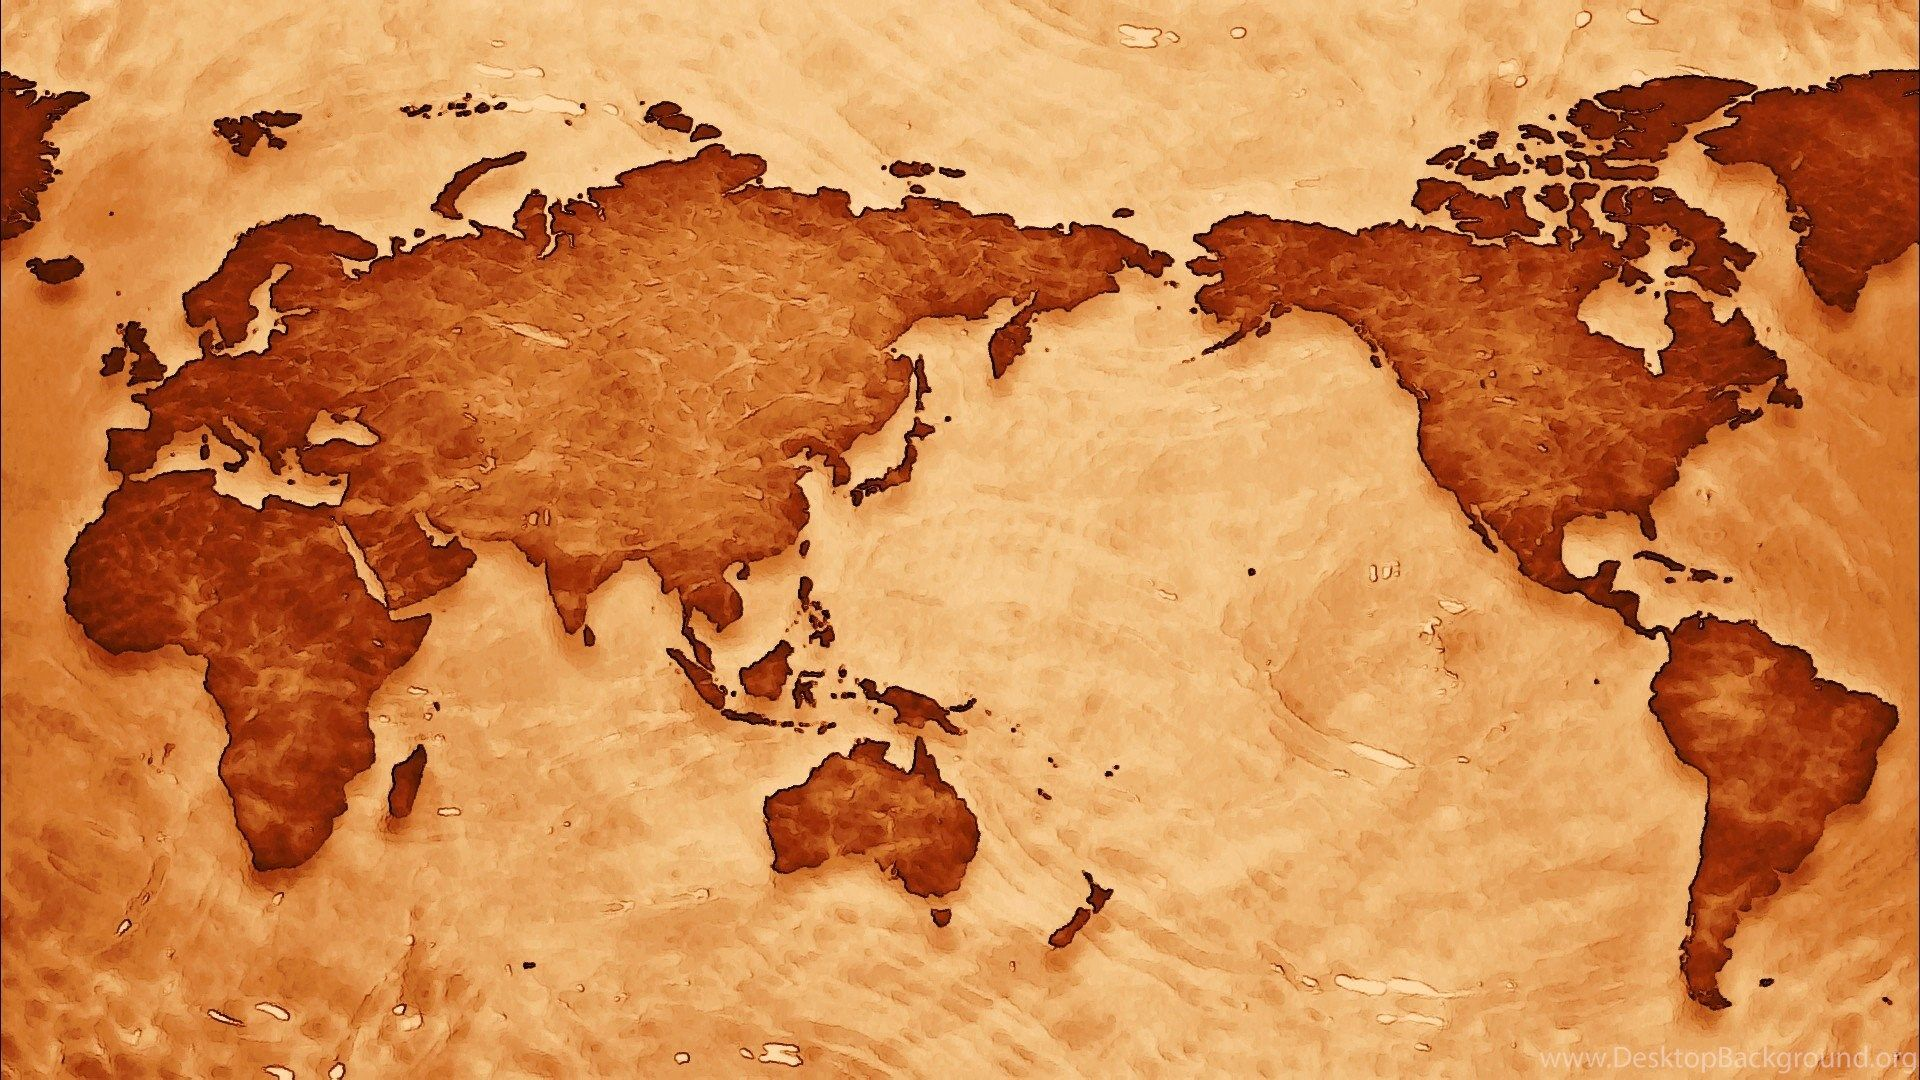 Download High Resolution World Map Backgrounds Wallpapers Full Size